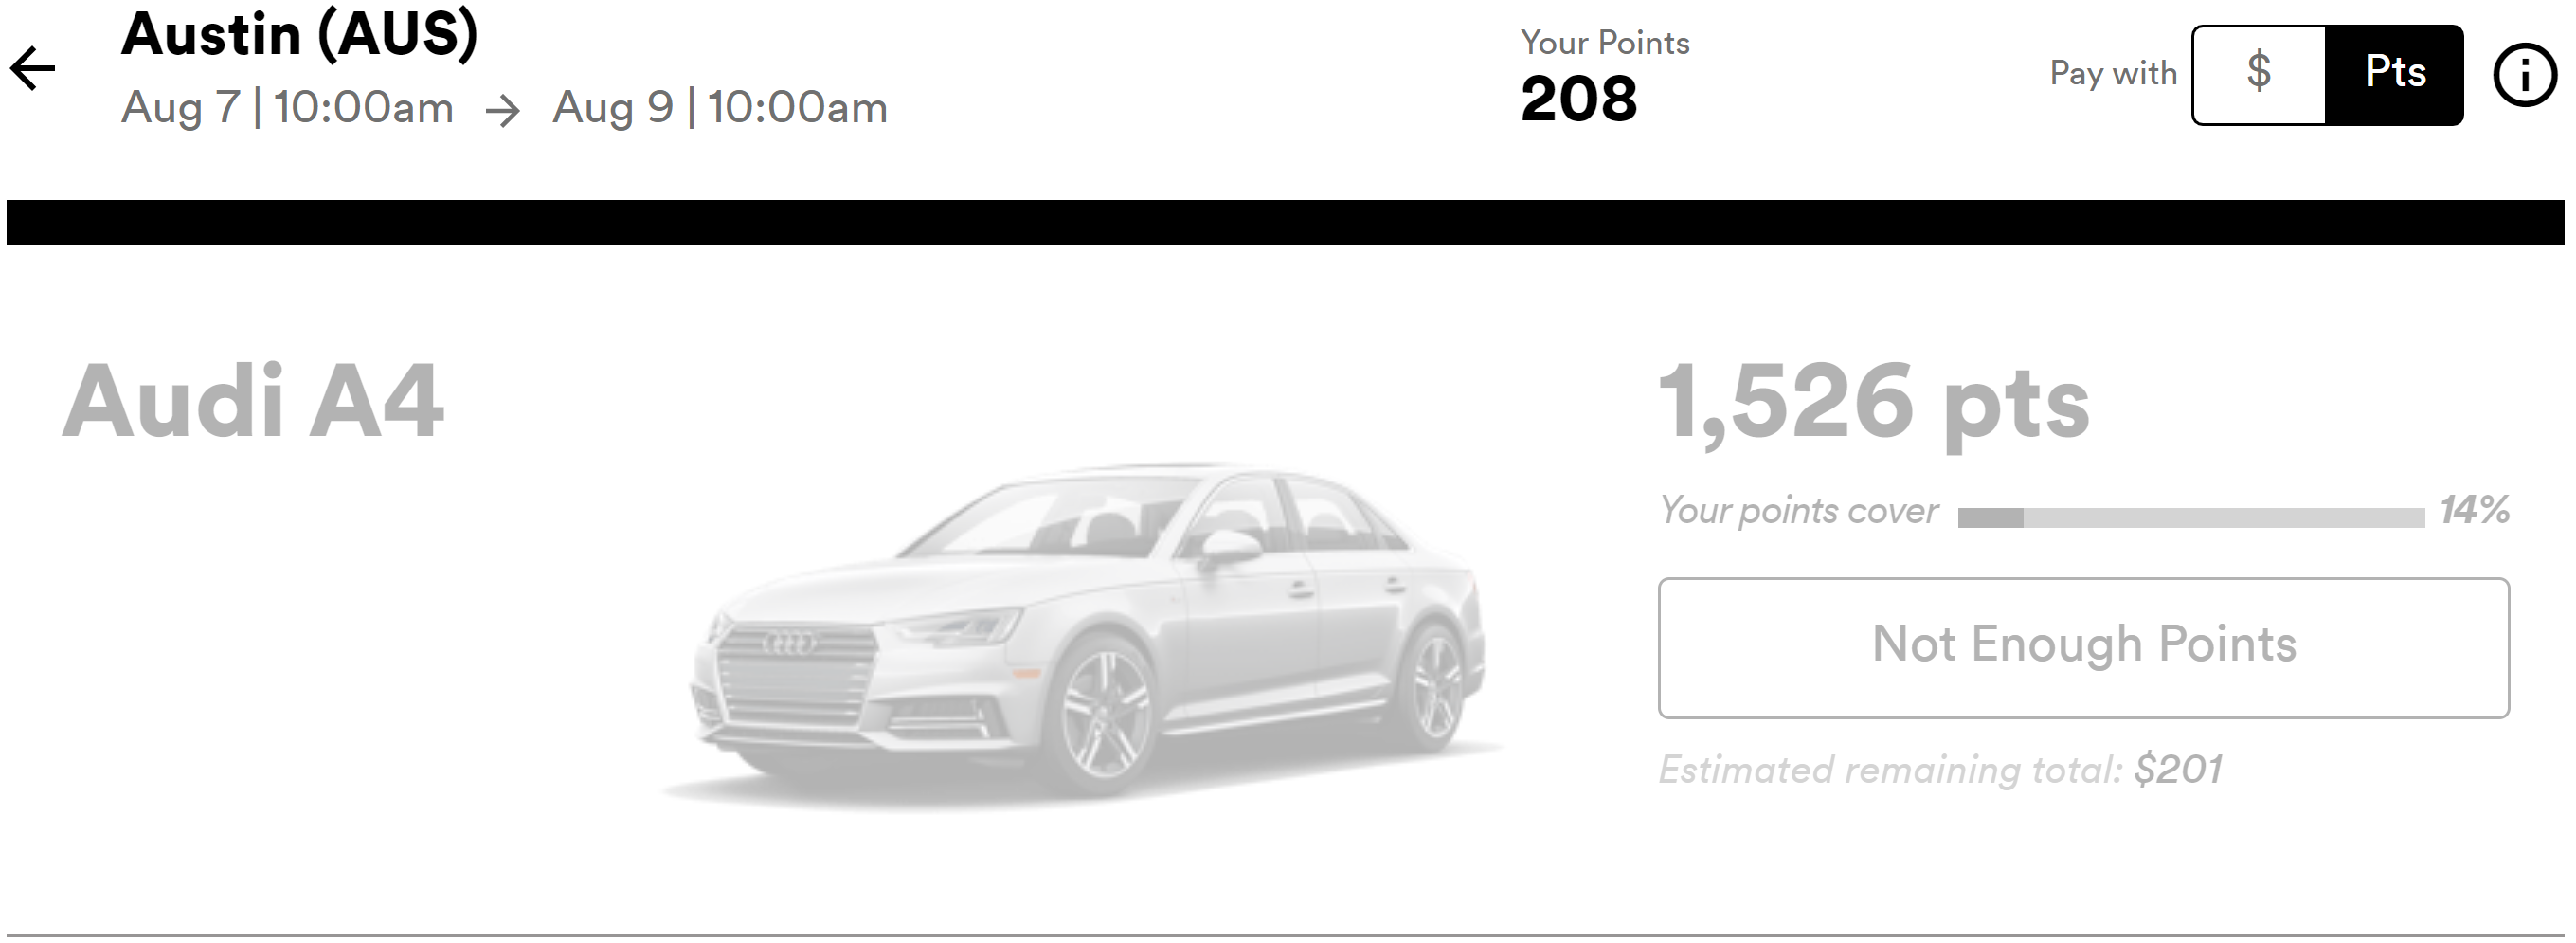 Silvercar points rate